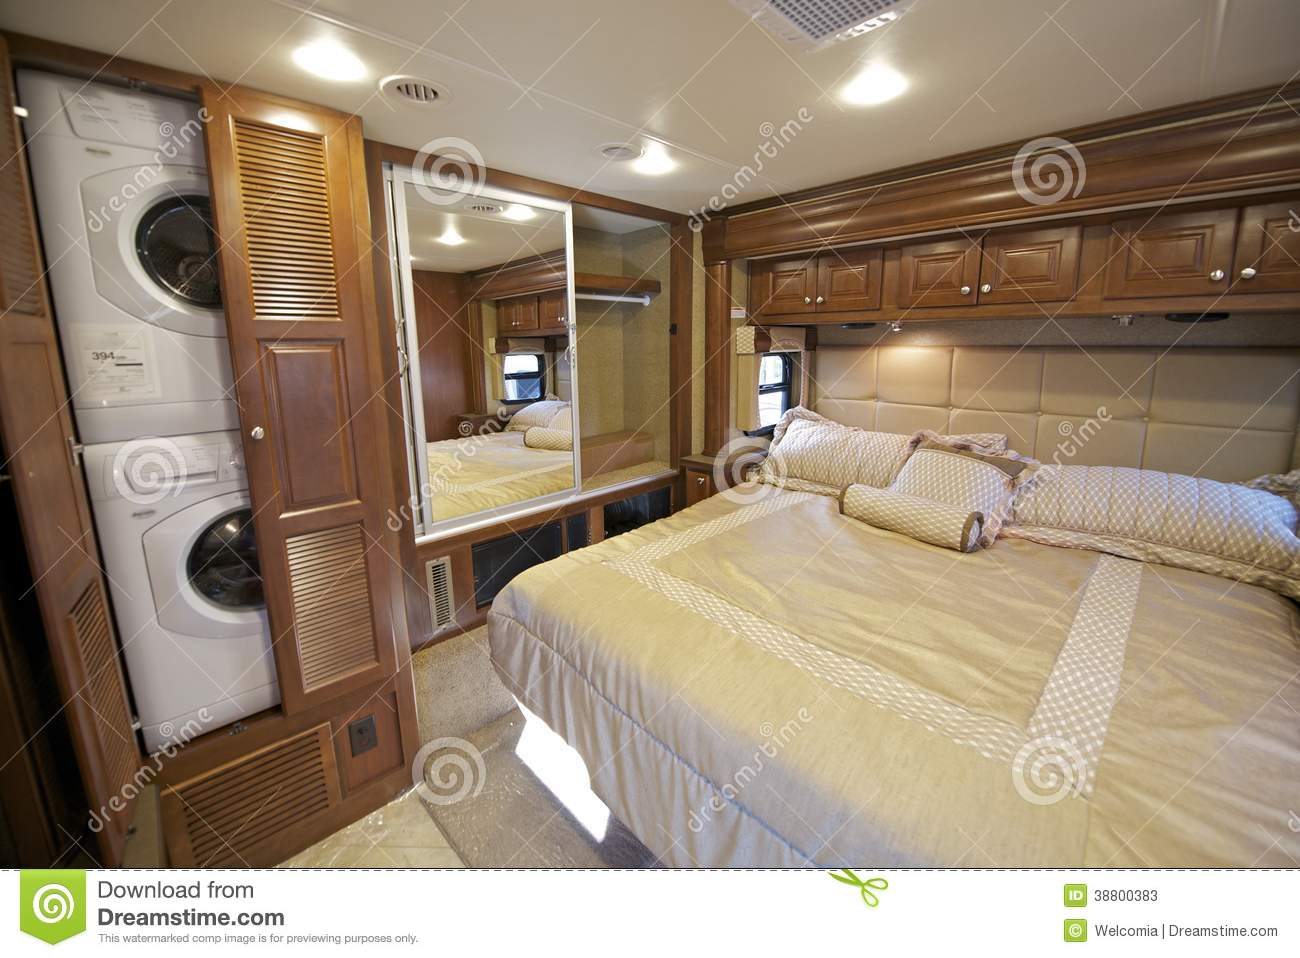 Rv bedroom stock image image of mattress sleeping vehicle 38800383 Rv with 2 bedrooms 2 bathrooms